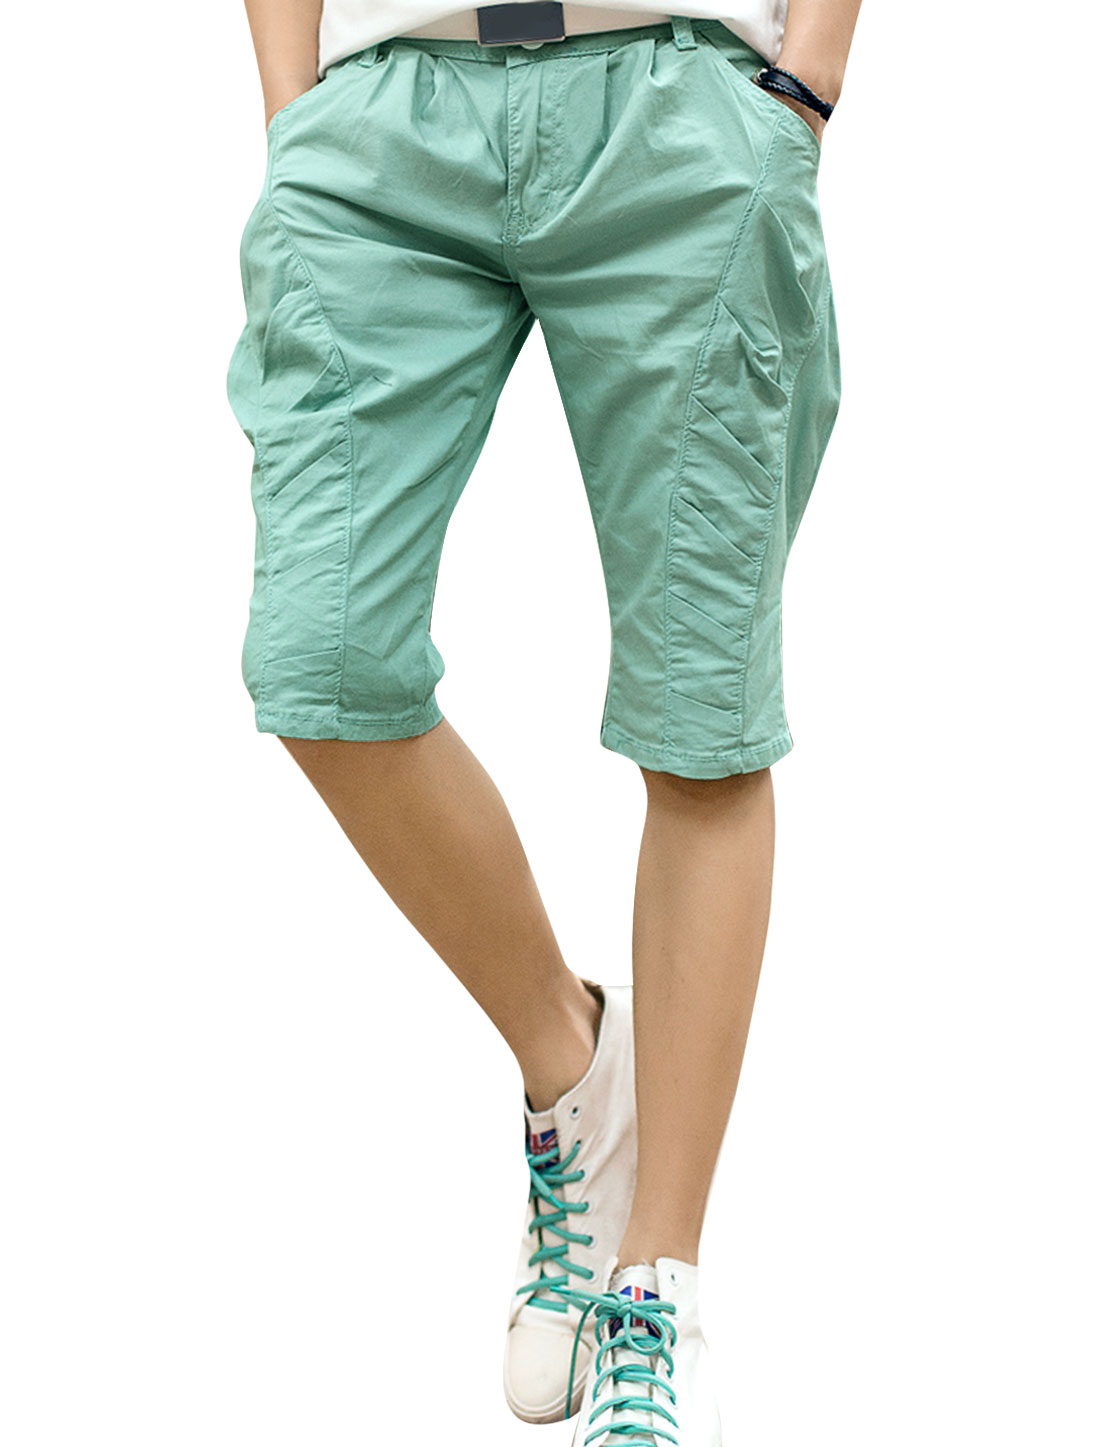 Men Casual Zip Up One Button Up Ruched Design Shorts Mint W30